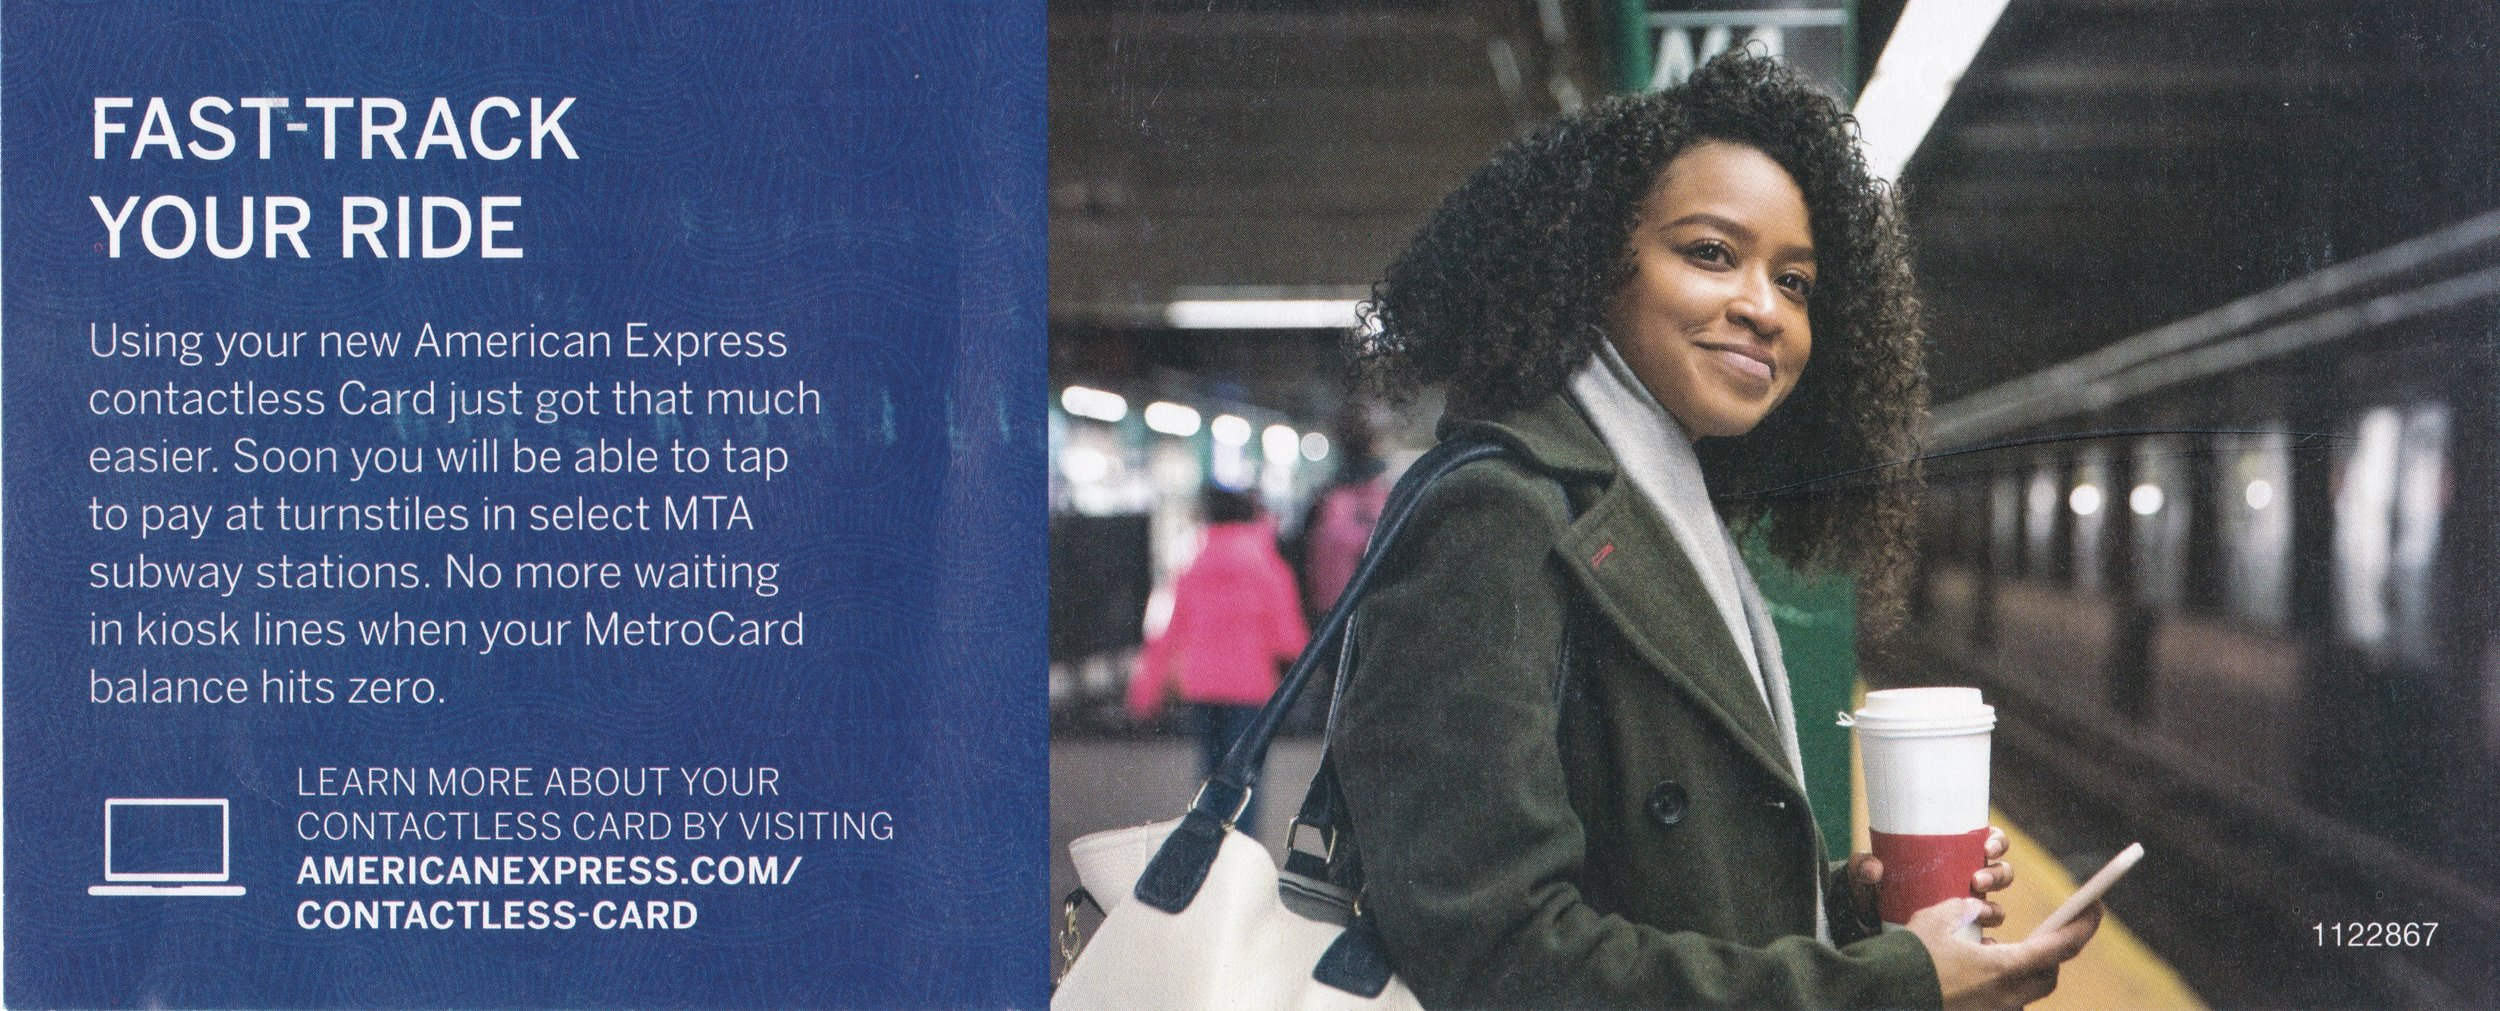 American Express Print Ad